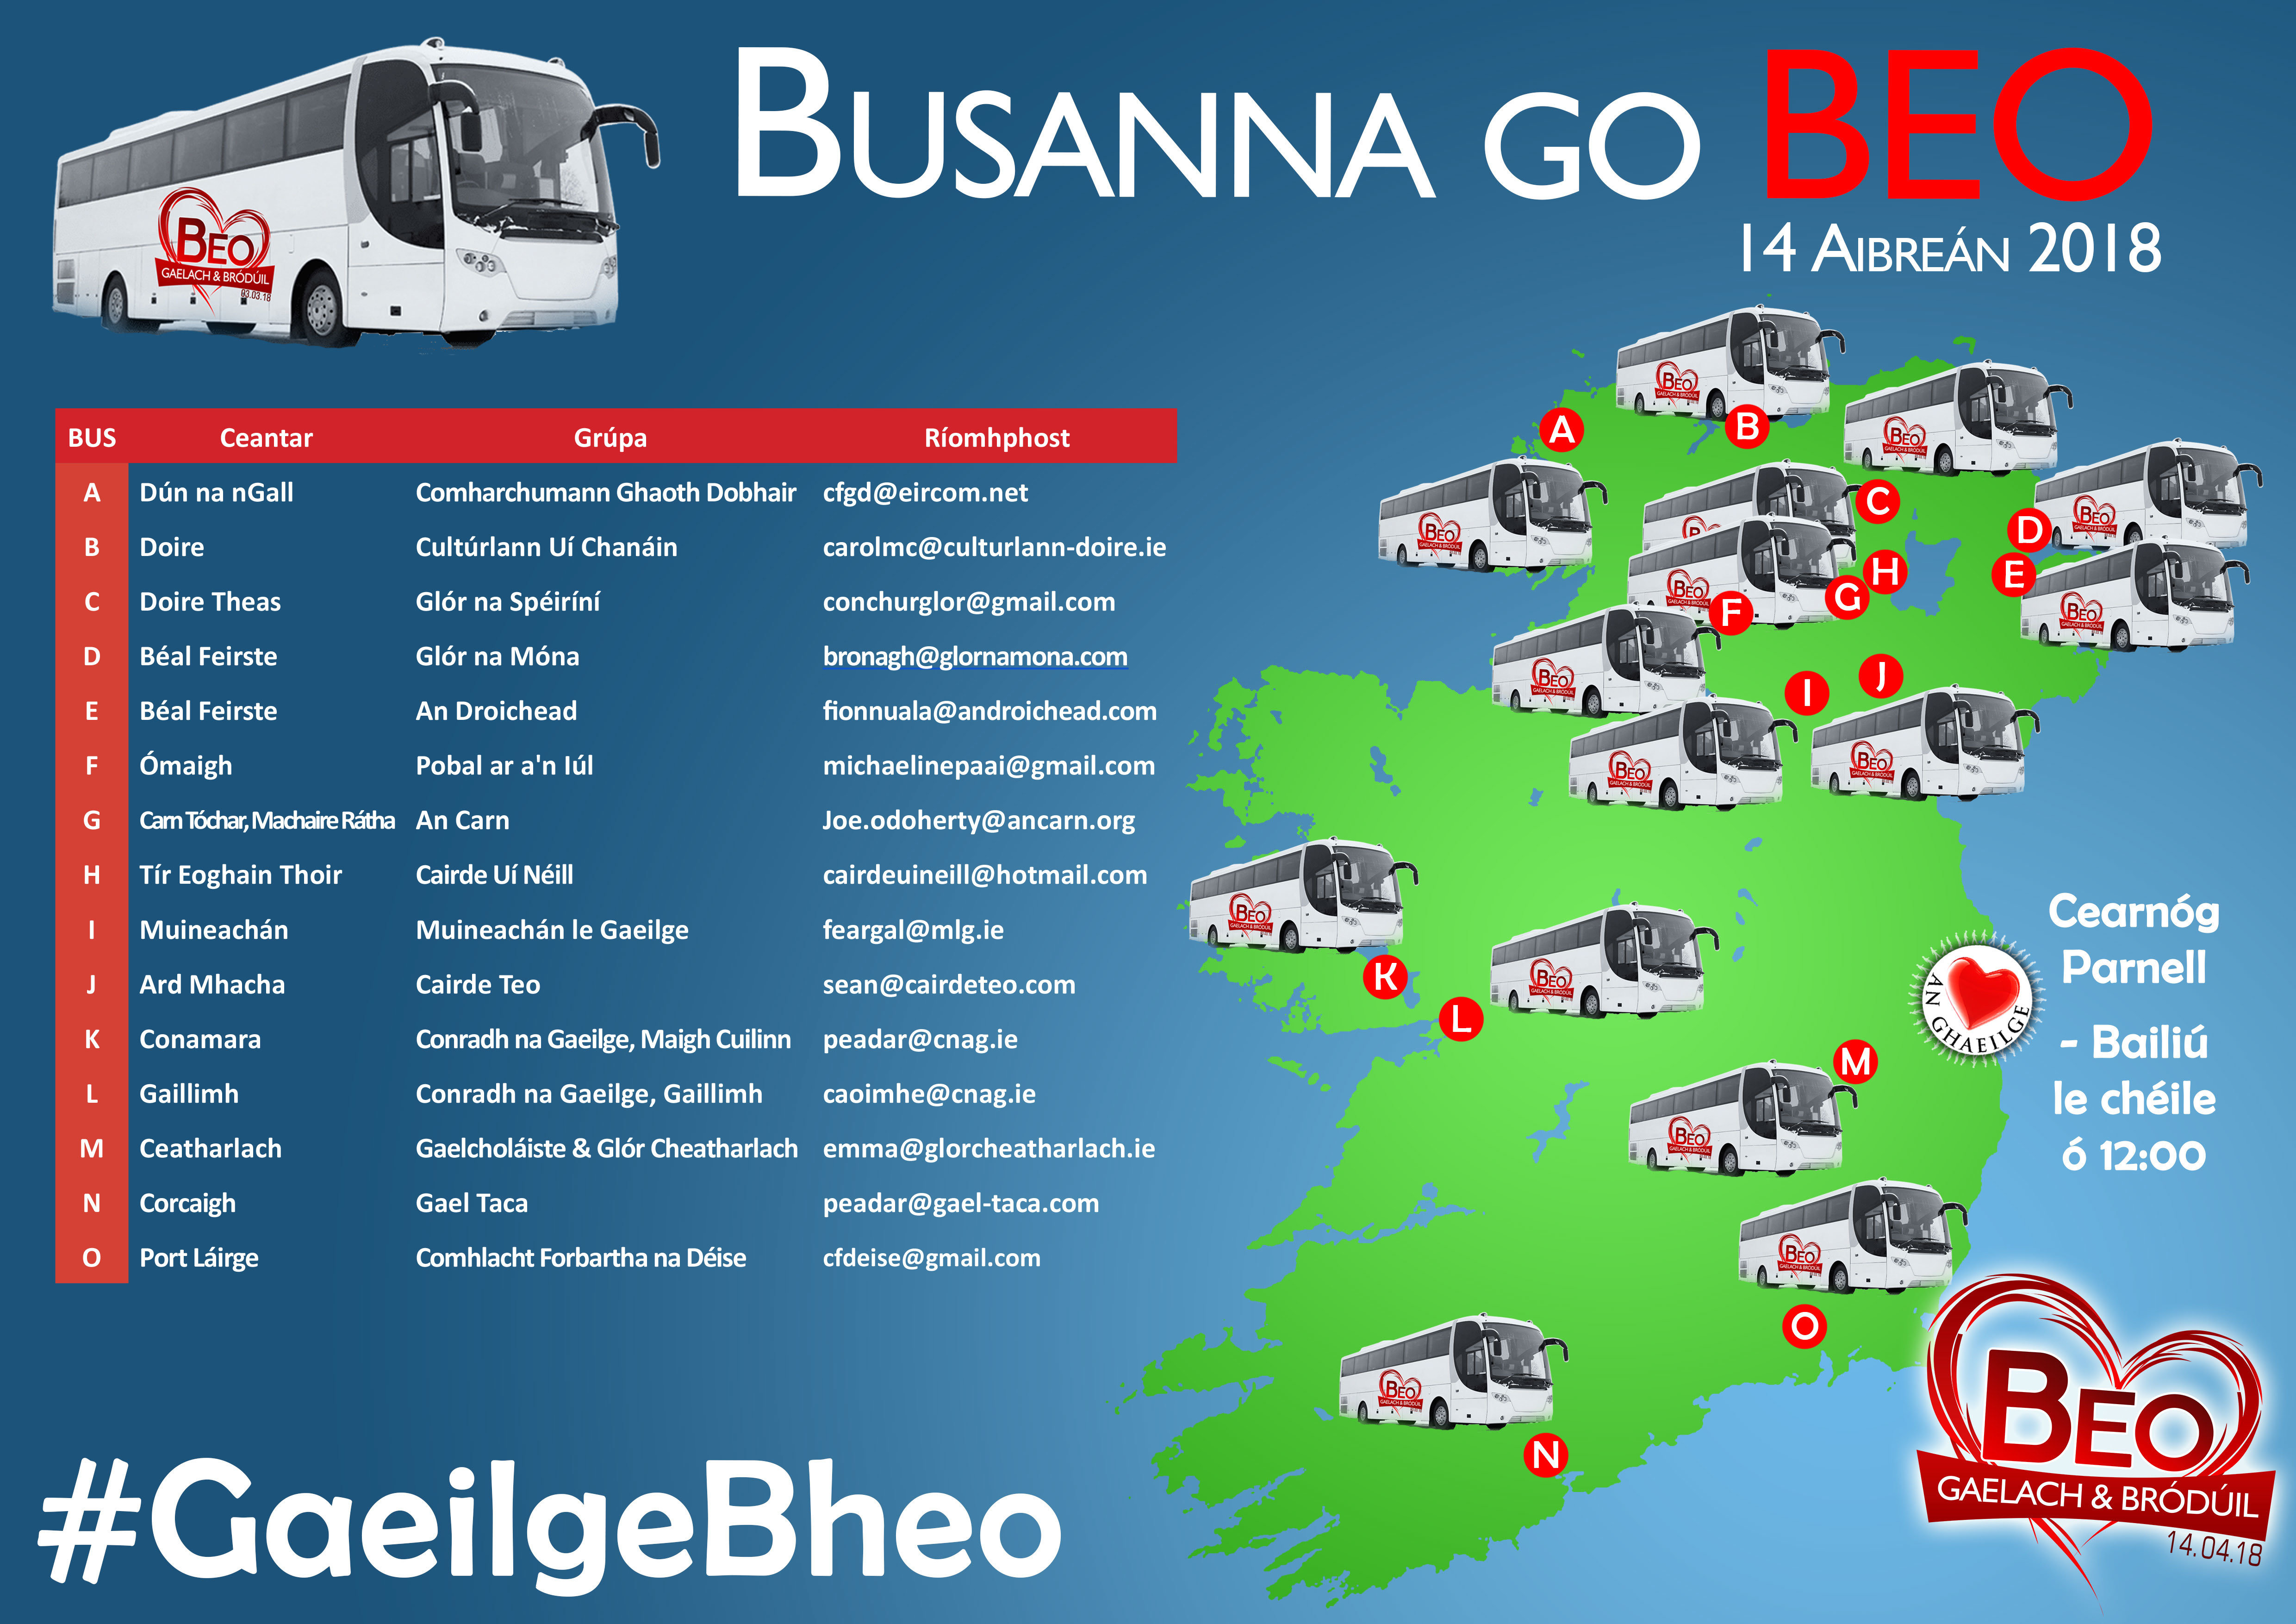 Bus to Beo in Dublin from Moycullen